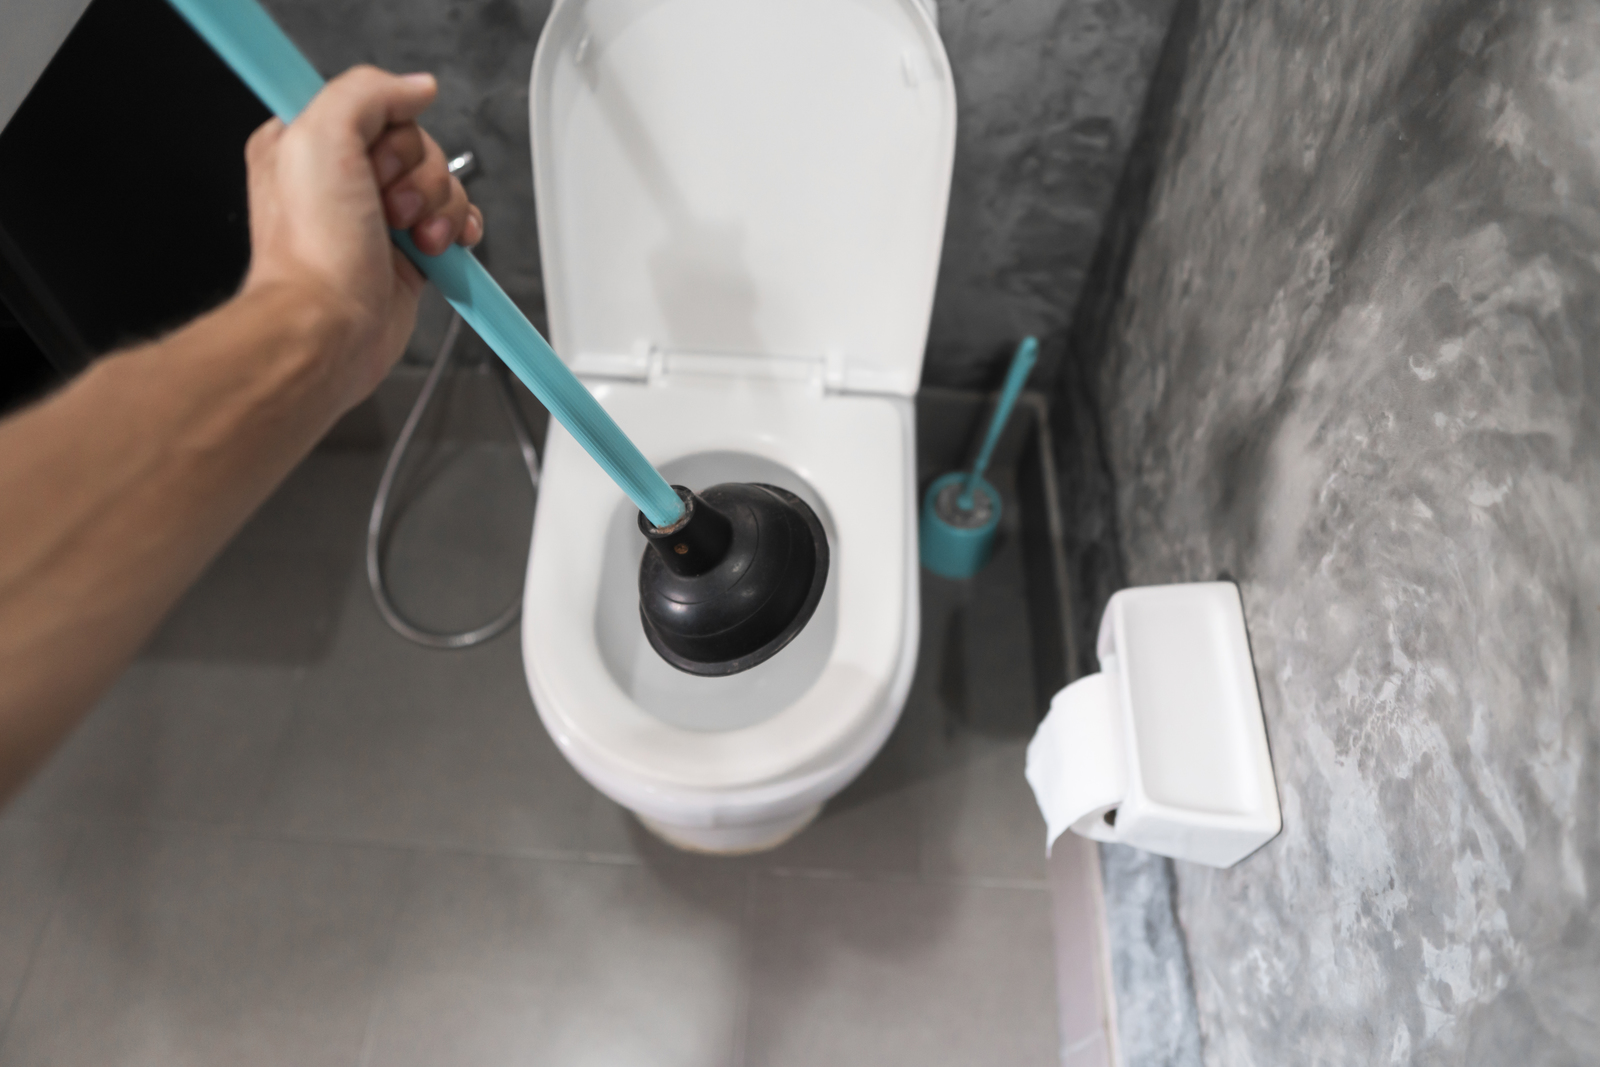 Toilet repair by hand with a Toilet Plunger